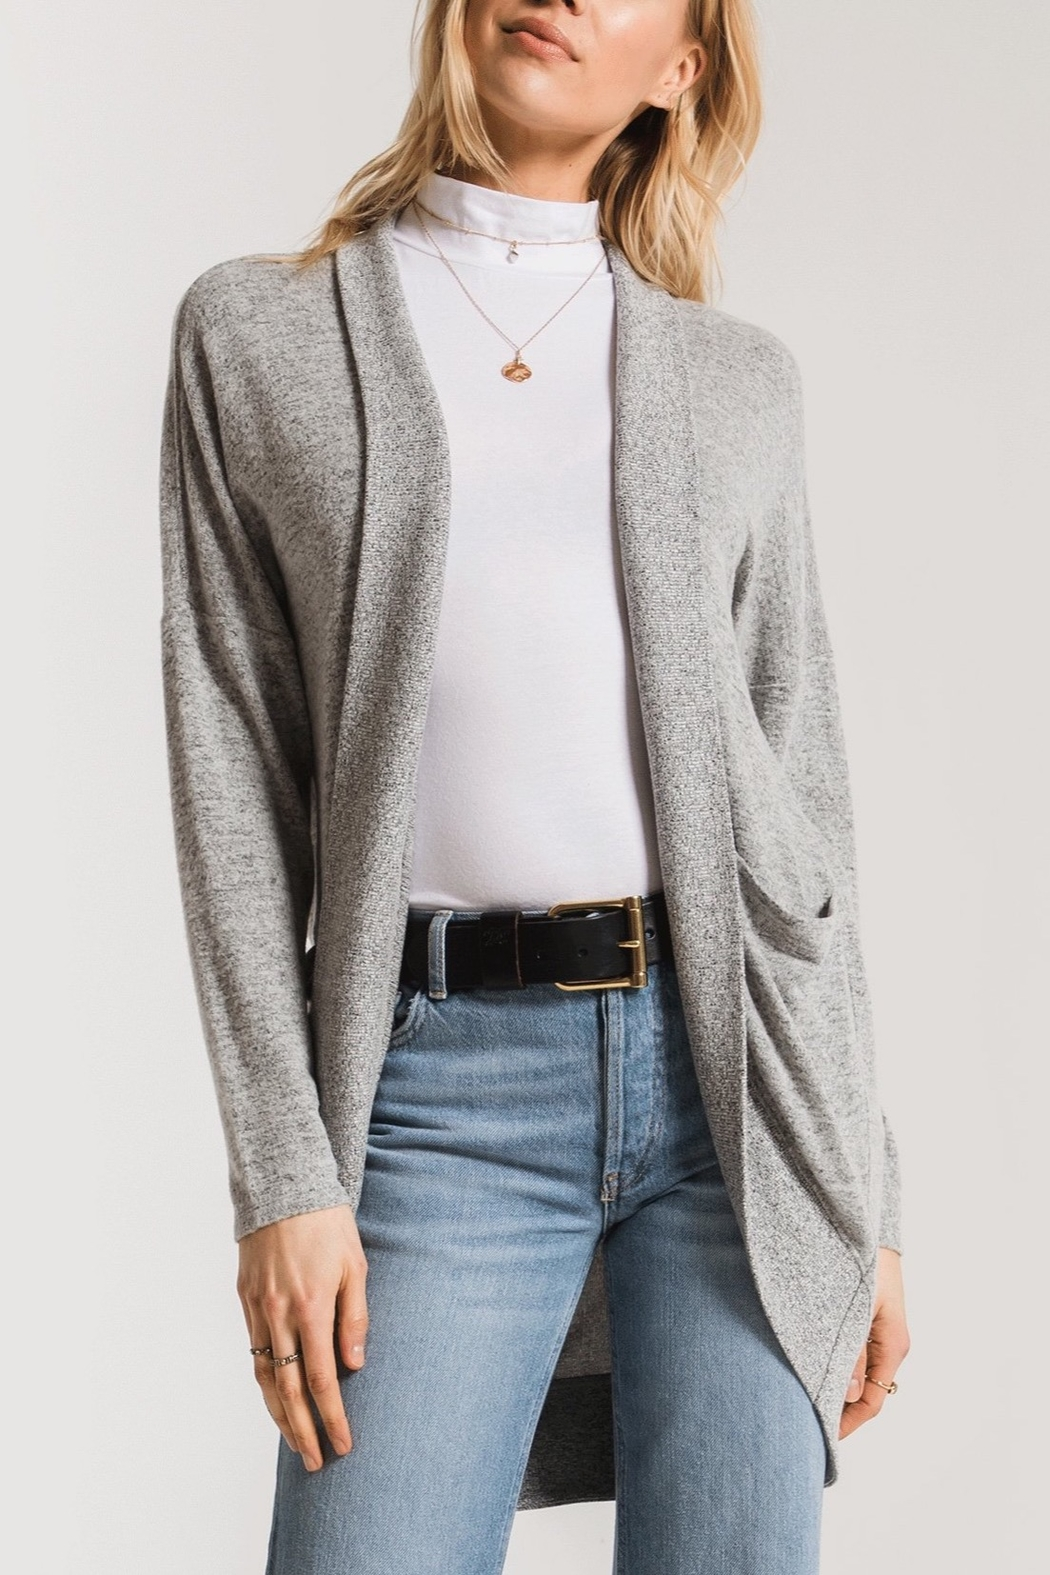 z supply Marled Sweater Knit Coccoon Cardigan - Main Image